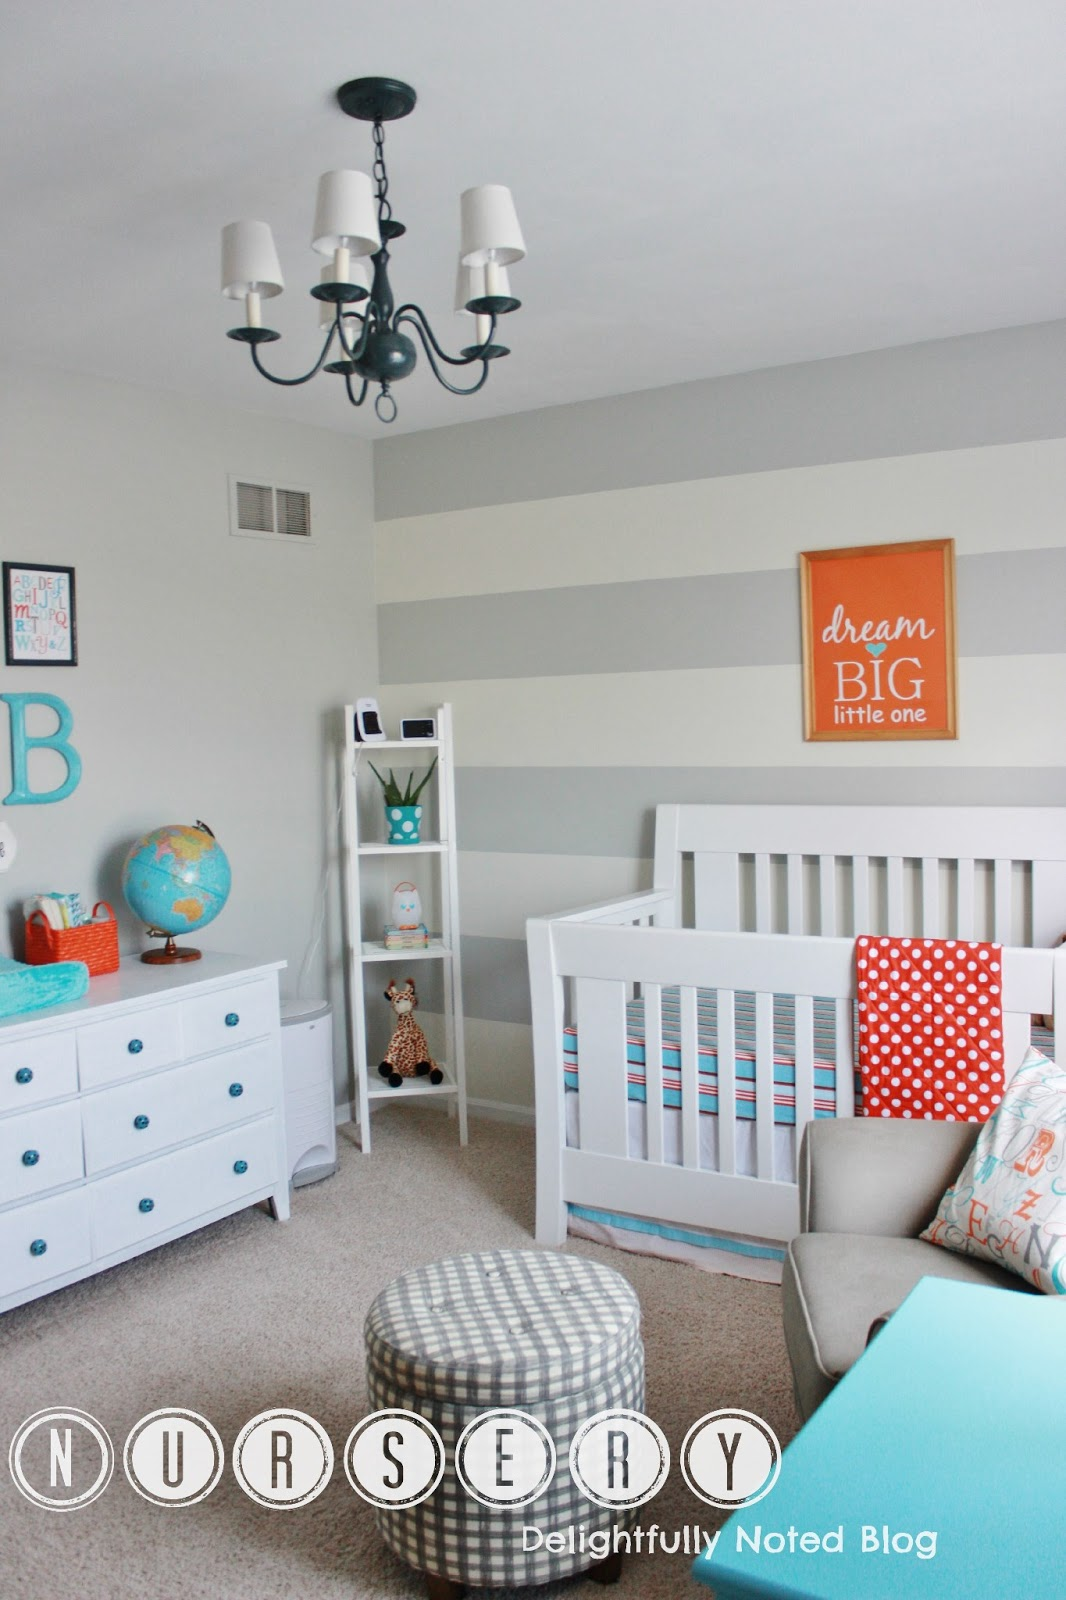 aqua-orange-grey-baby-nursery